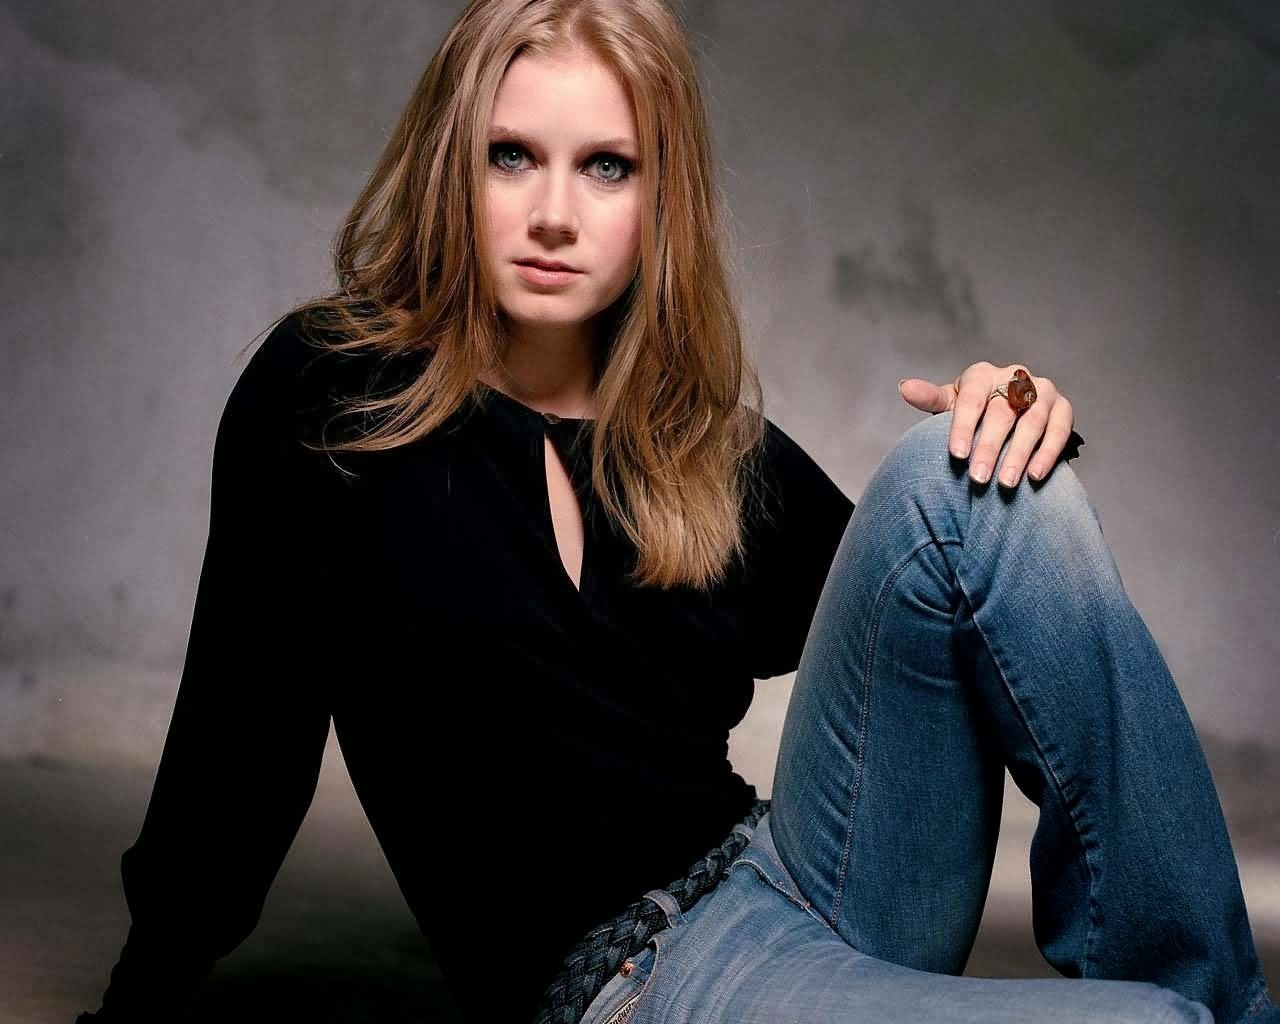 Amy Adams Hot free download latest celebrity photos amy adams hot and sexy